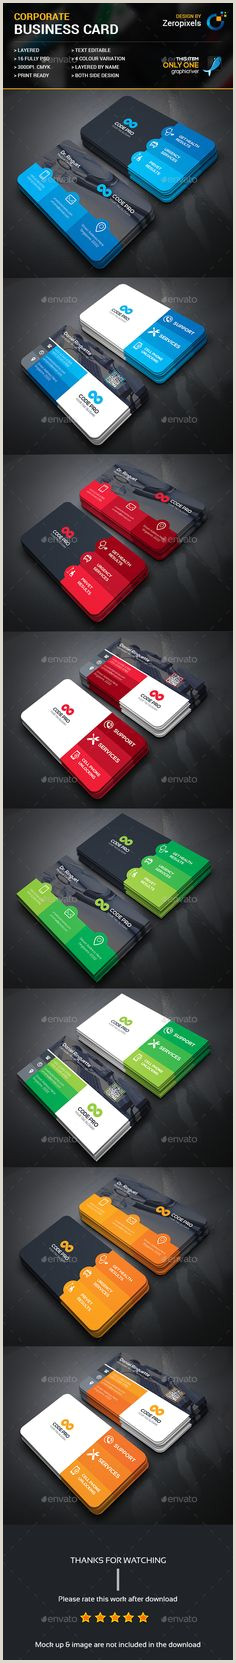 Why Business Cards Are Important 20 Best Business Cards Images